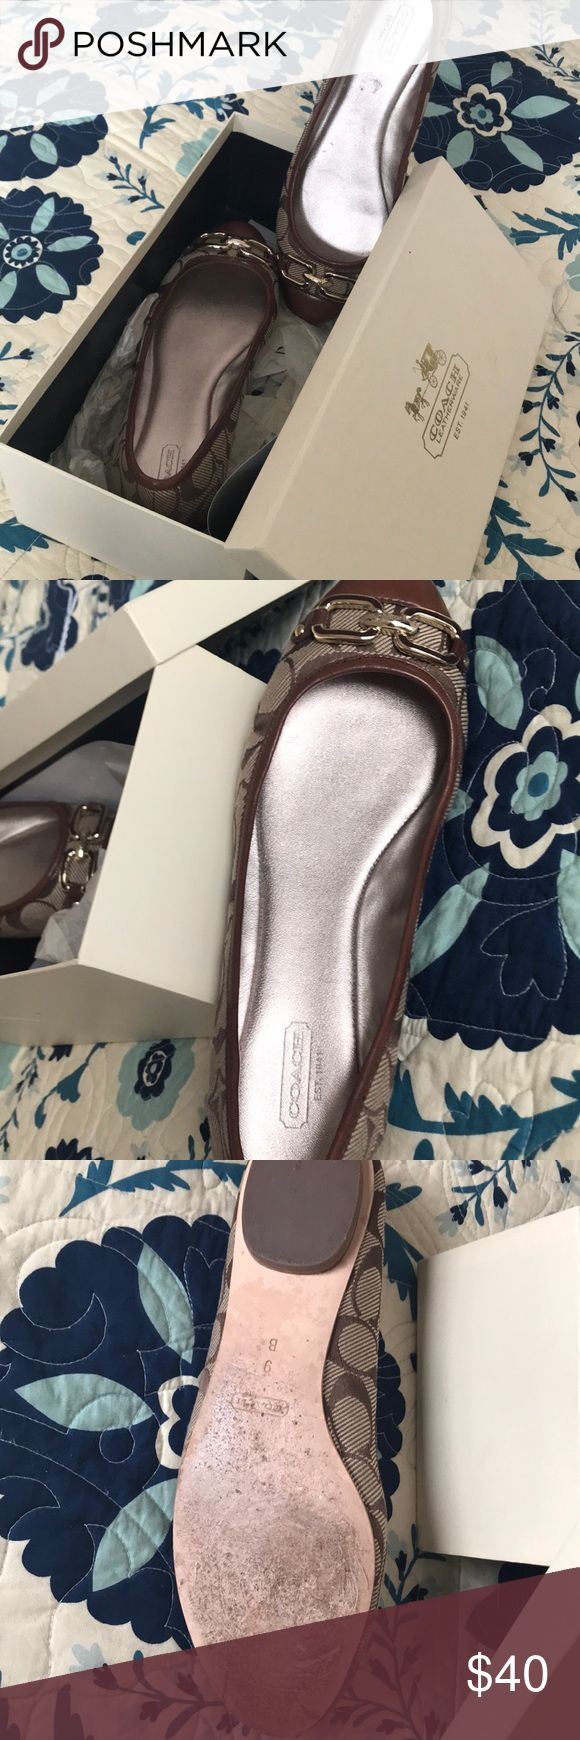 Classic Signature Coach Flats in neutral tones. Classic Coach flats crafted with signature jacquard with a cap toe covered in supple leather and accented in gold. These comfortable and classic flats will serve you well, last a lifetime and will always be in style. Coach Shoes Flats & Loafers